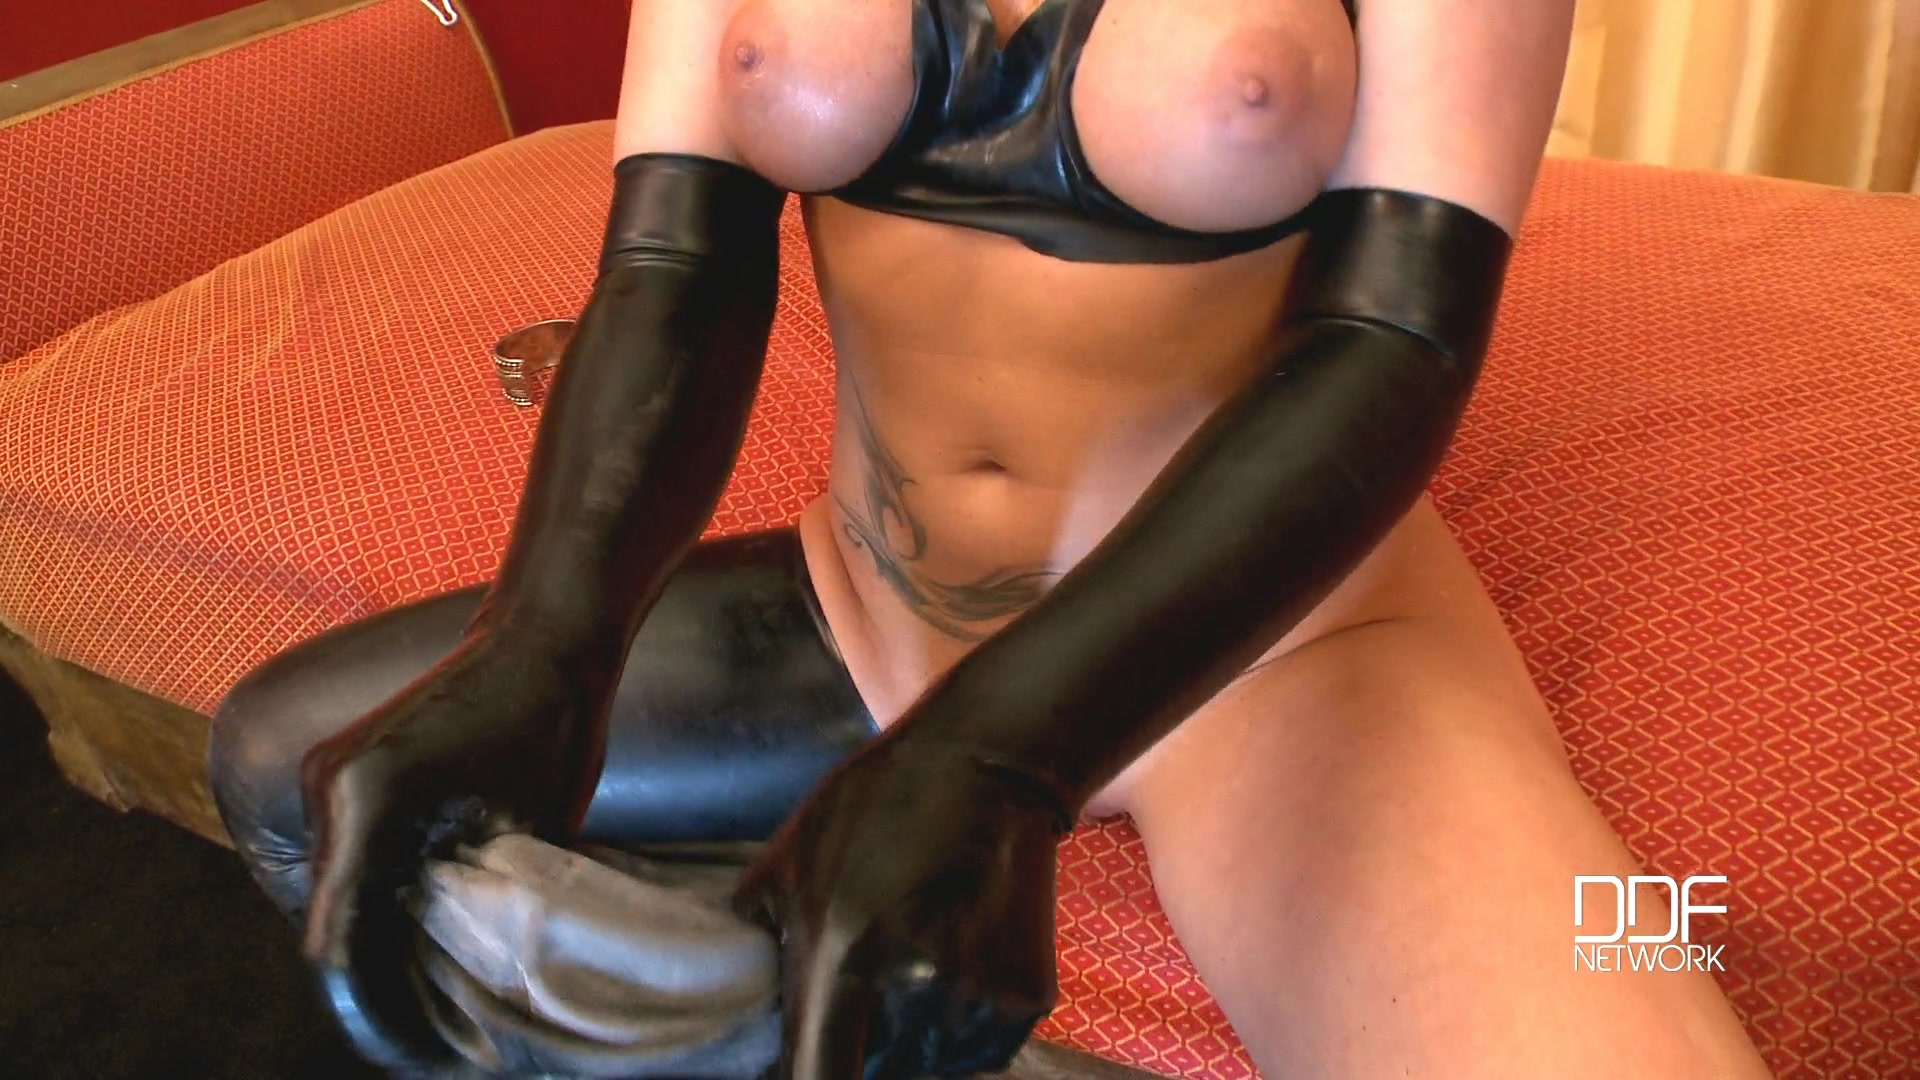 830086314_Kathia_Taking_On_Latex_Outfit.mp4_20160810_094621.468_123_81lo.jpg